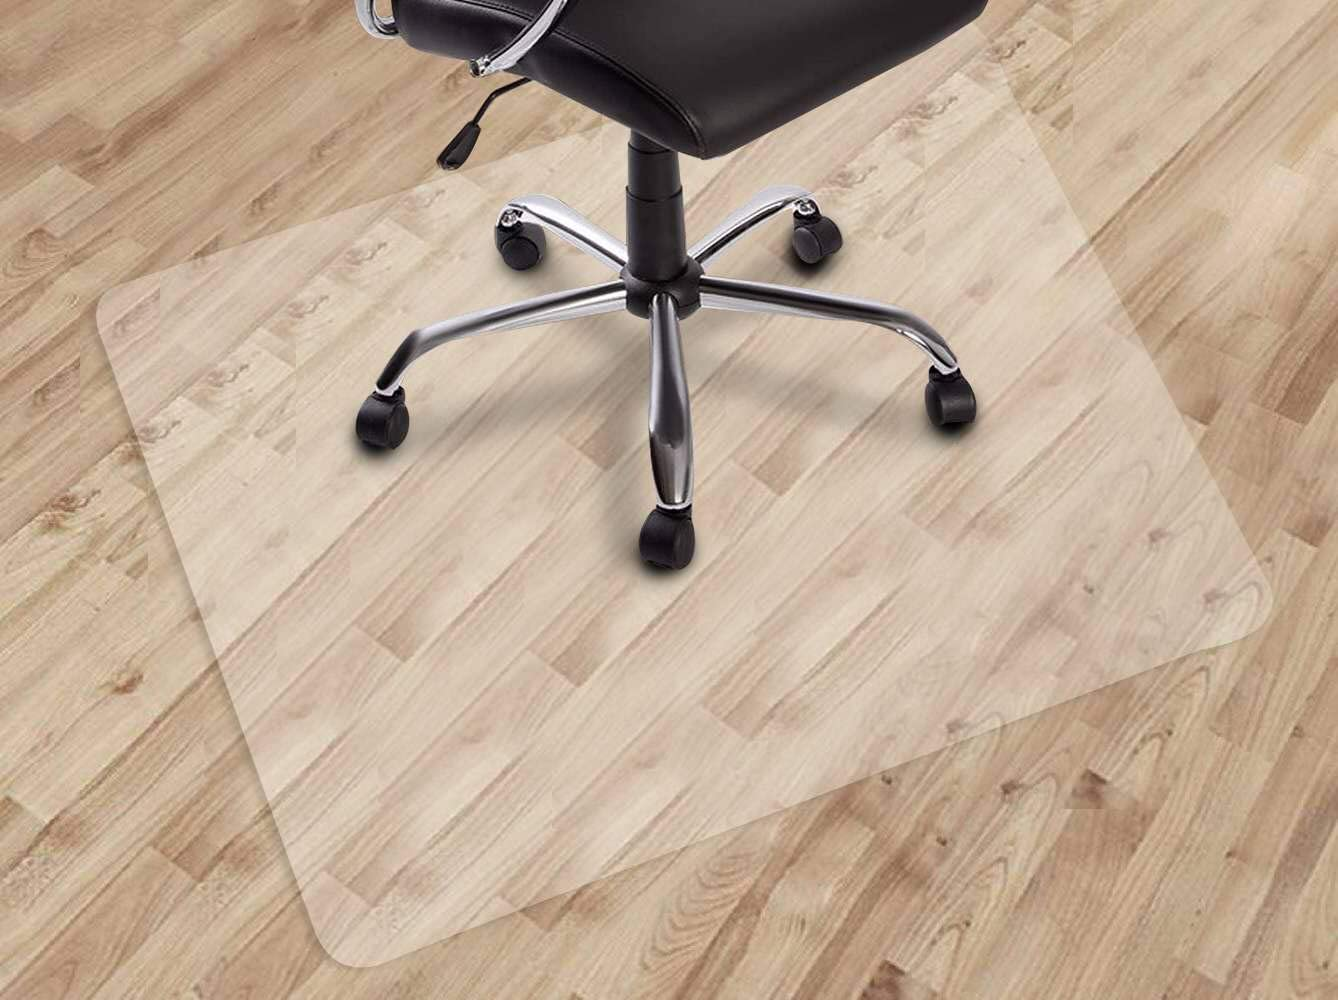 "Dinosaur Office Chair mat for Hard Floors, 30"" X 48"" Transparent Floor Mats, Easy Glide for Chairs, Wood/Tile Protection Mat for Office & Home (30"" X 48"" Rectangle)"